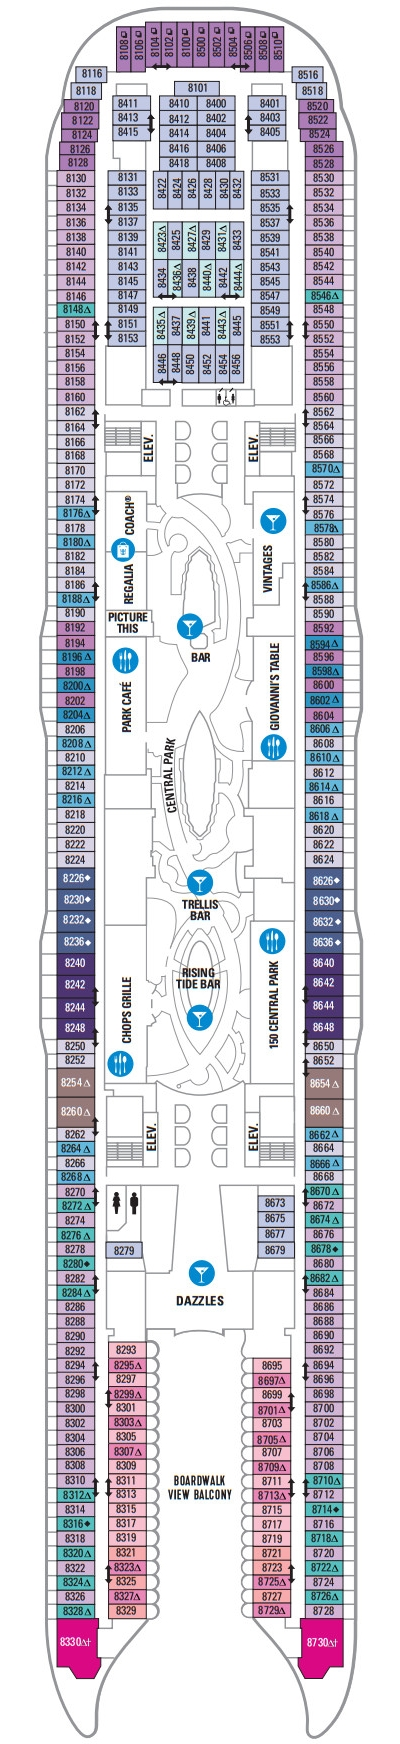 Allure Of The Seas Deck 8 layout